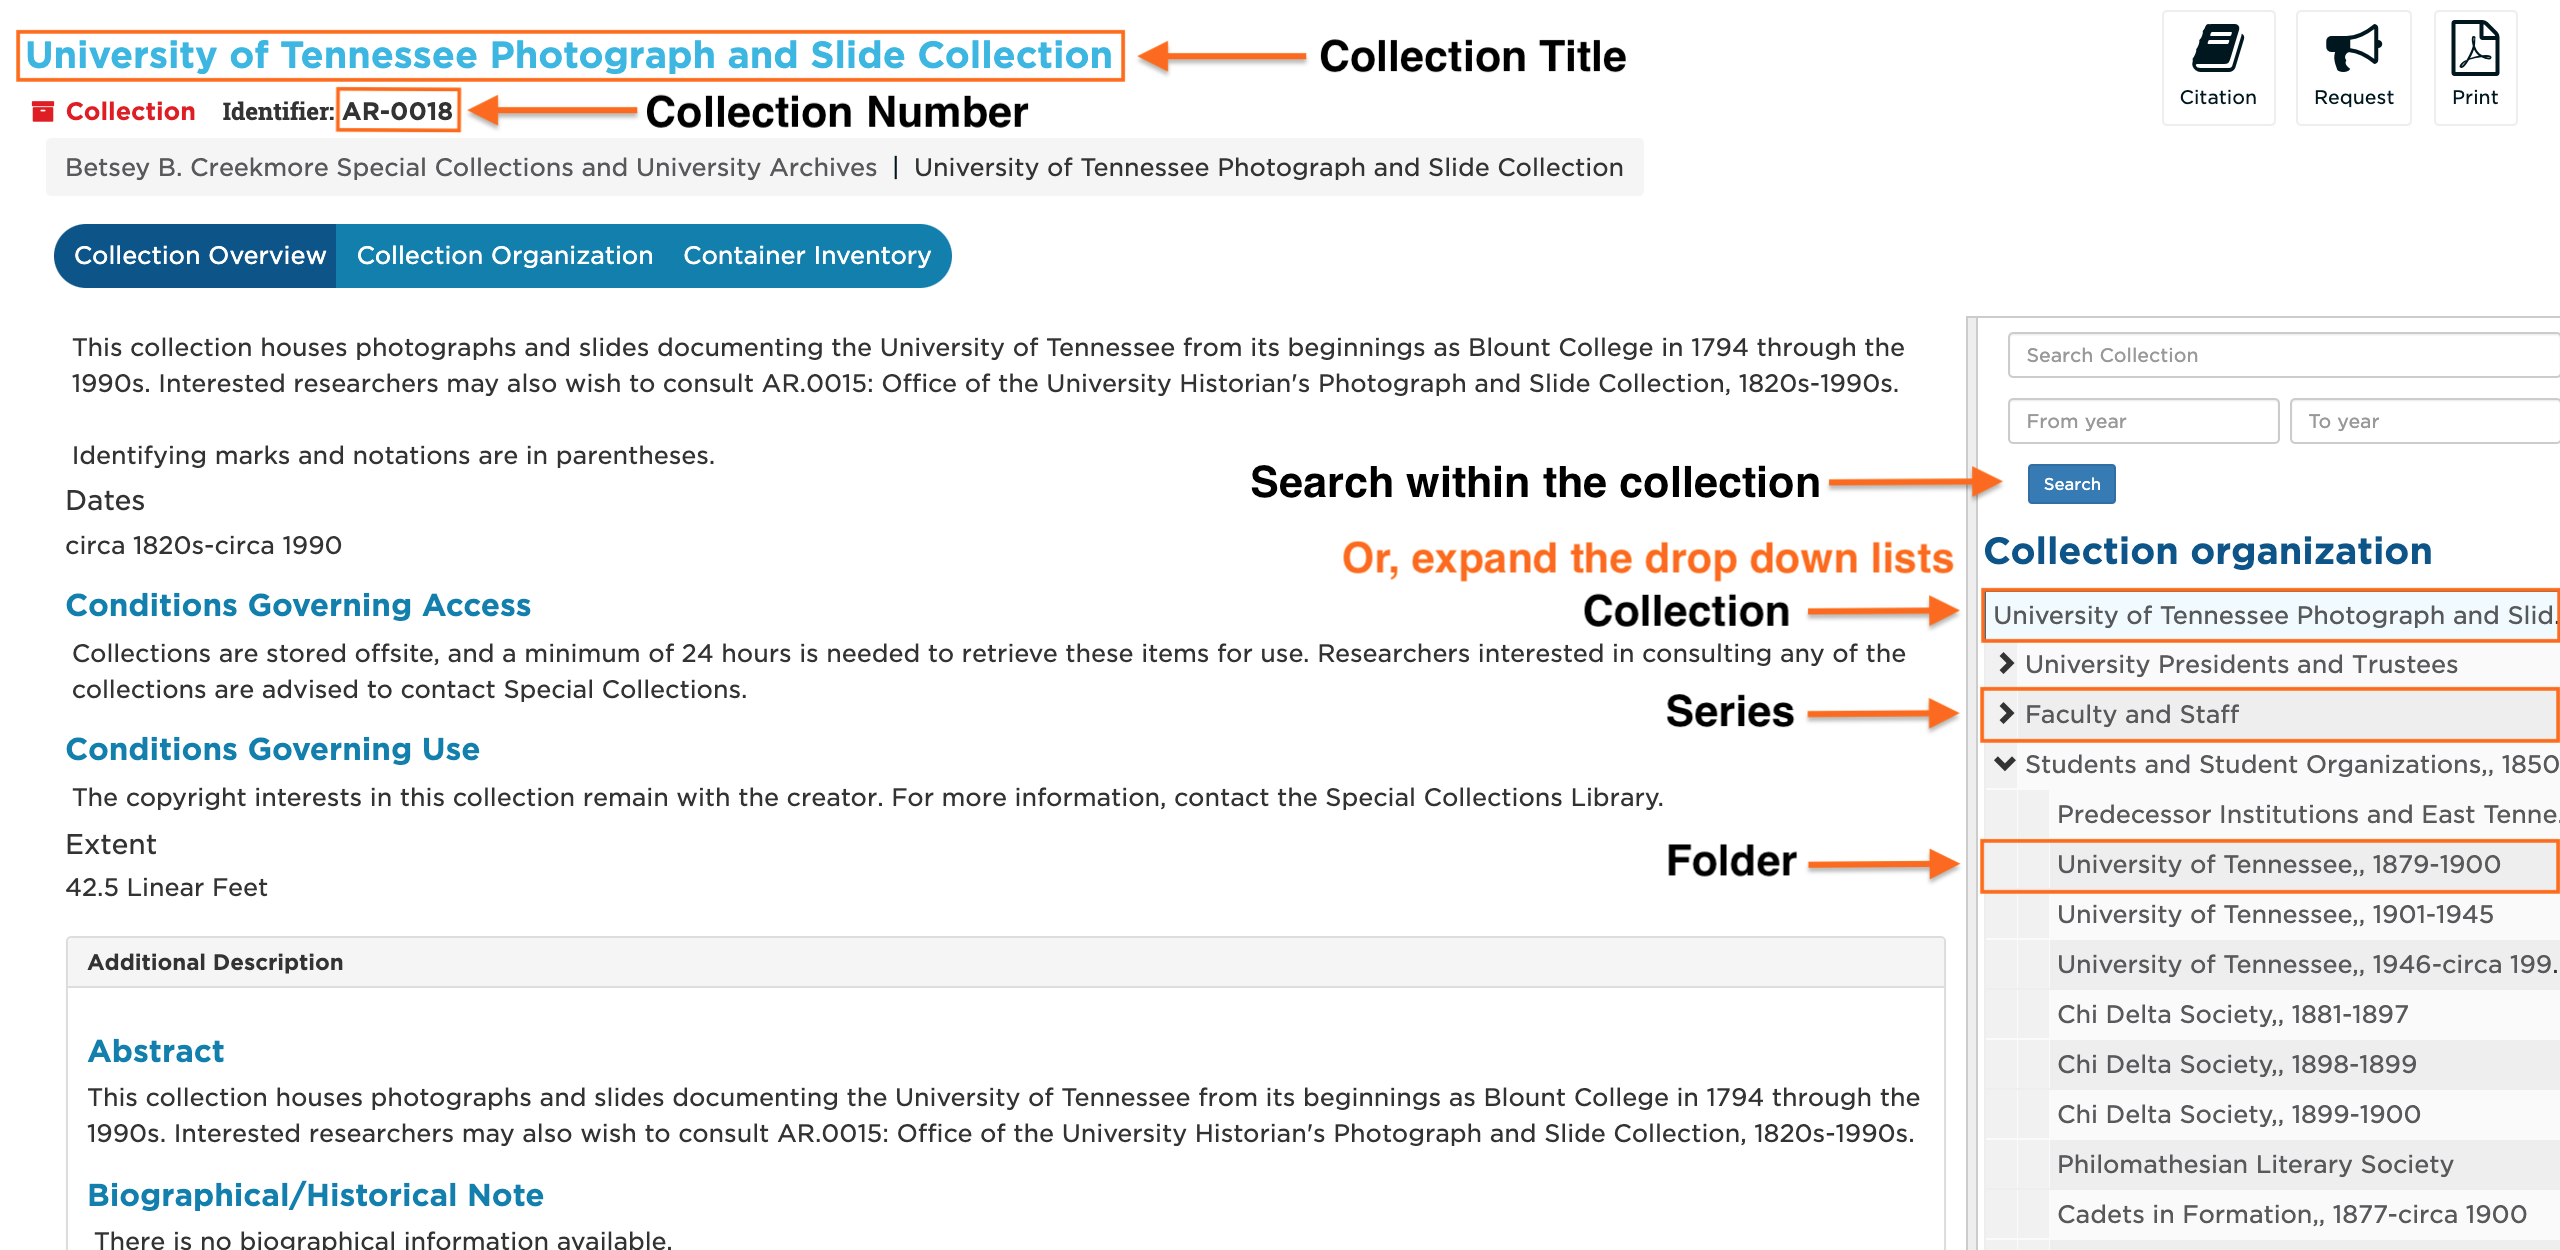 A screenshot showing where the collection title, collection number, series, and folder are on the collection title page.